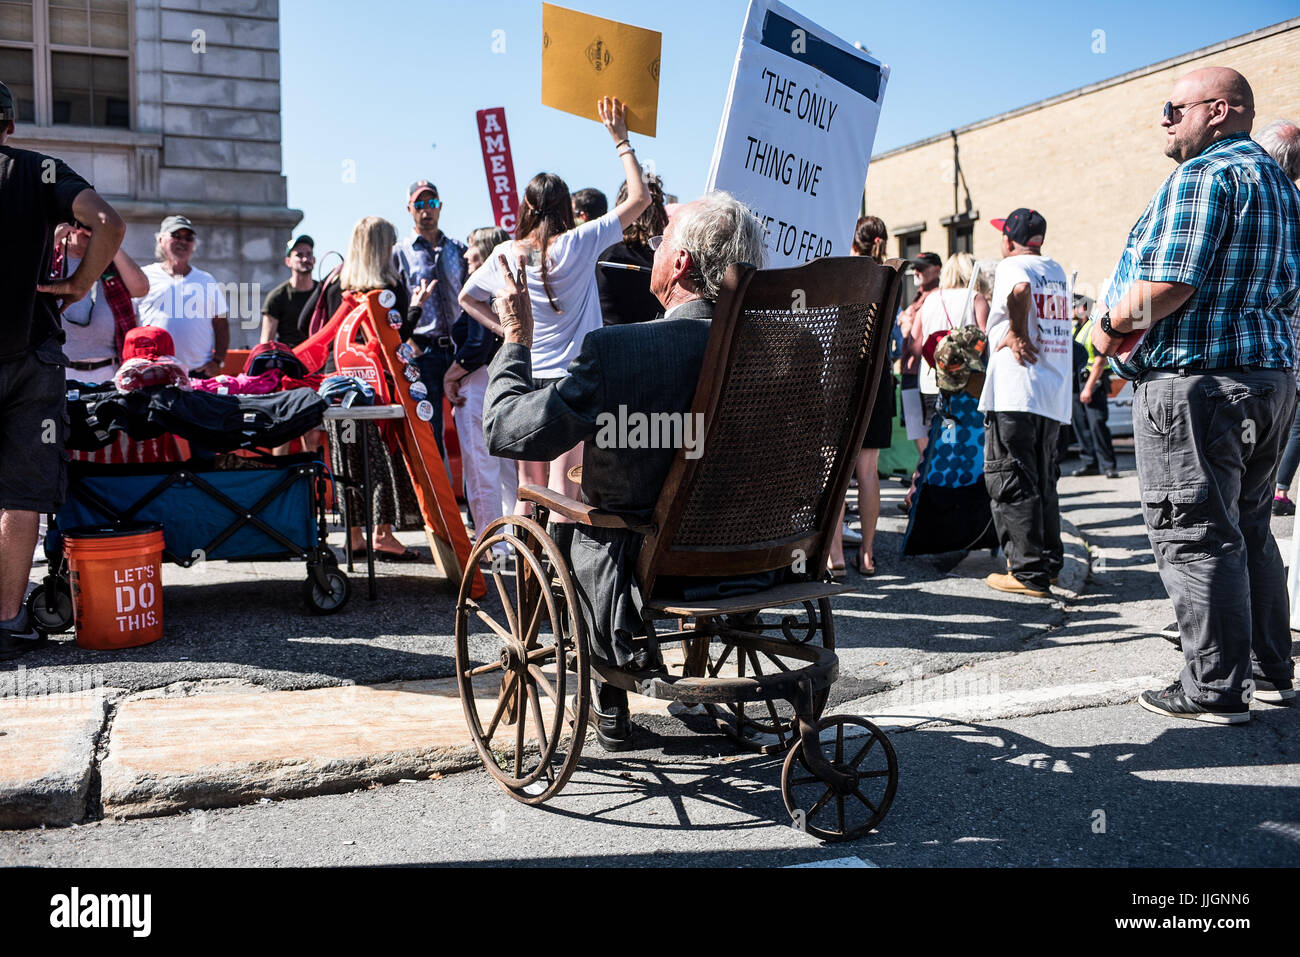 protestors, fake candidates, and vendors at the Trump rally in Portland, Maine on Aug 4, 2016 Stock Photo